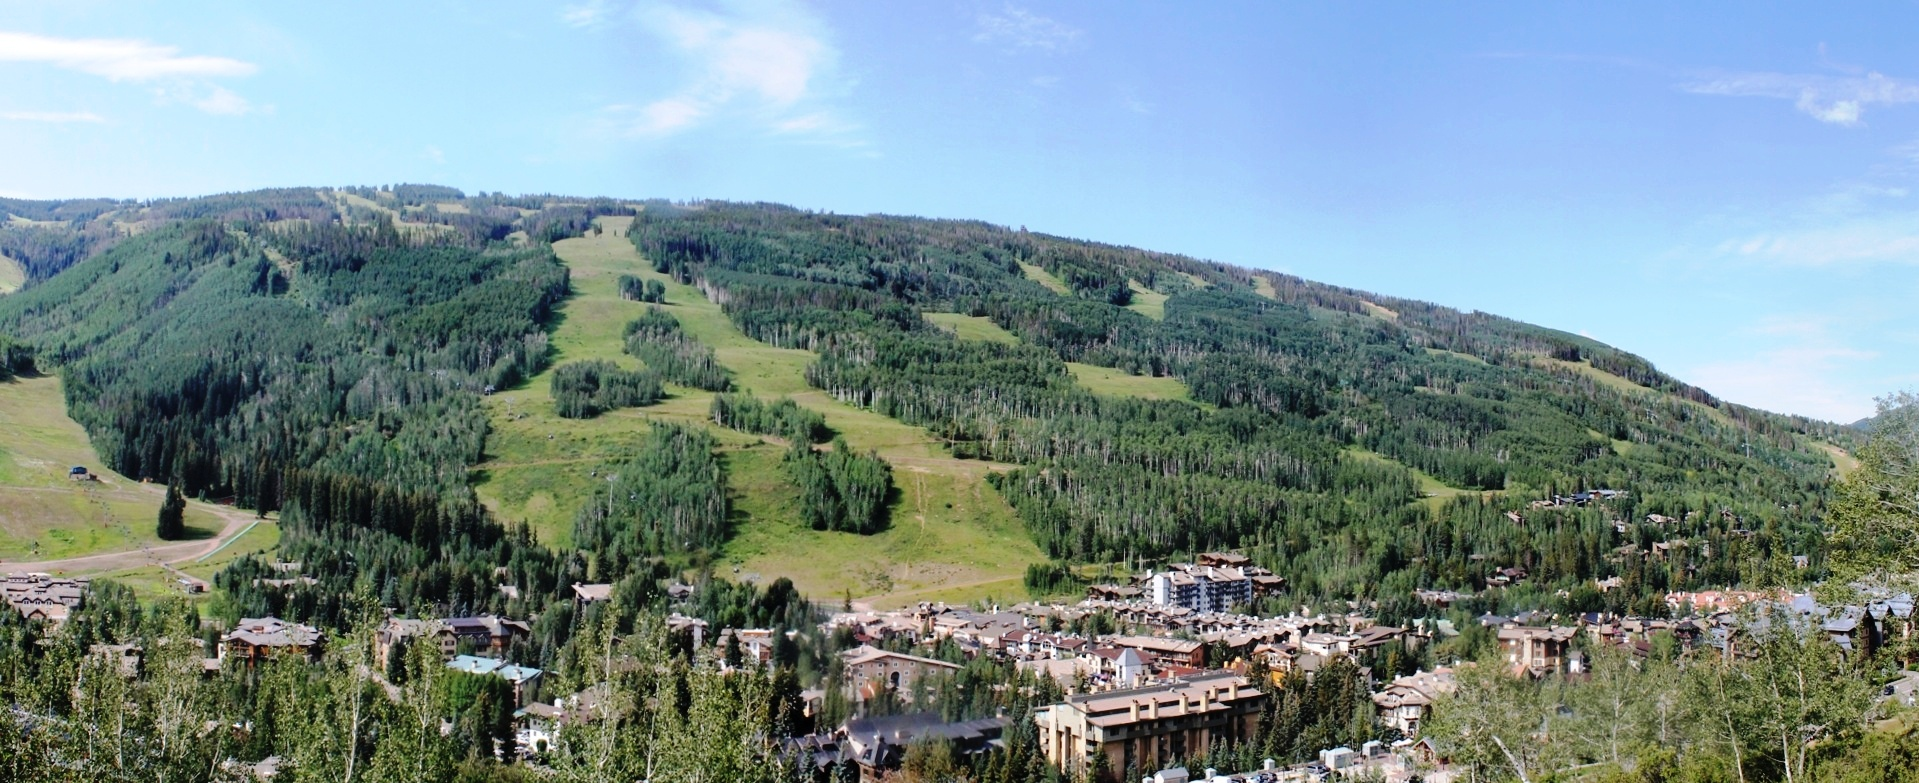 Vail Village Overview Summer